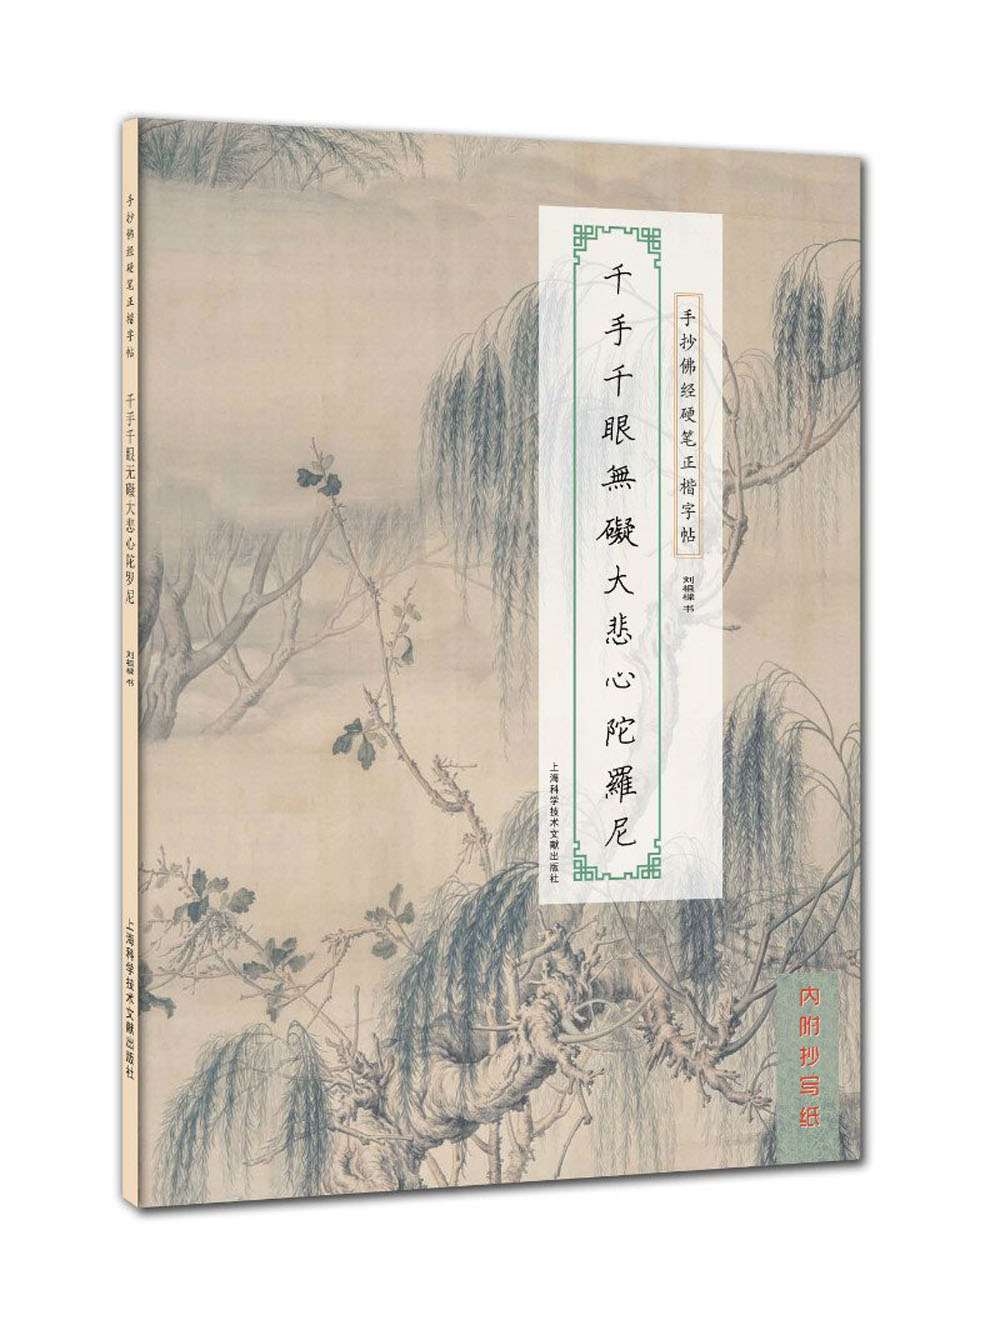 The handwritten Buddhist scriptures in pen copybook series : Qian Shou Wu Yan Da ning Da Bi Xin An luo Ning цена